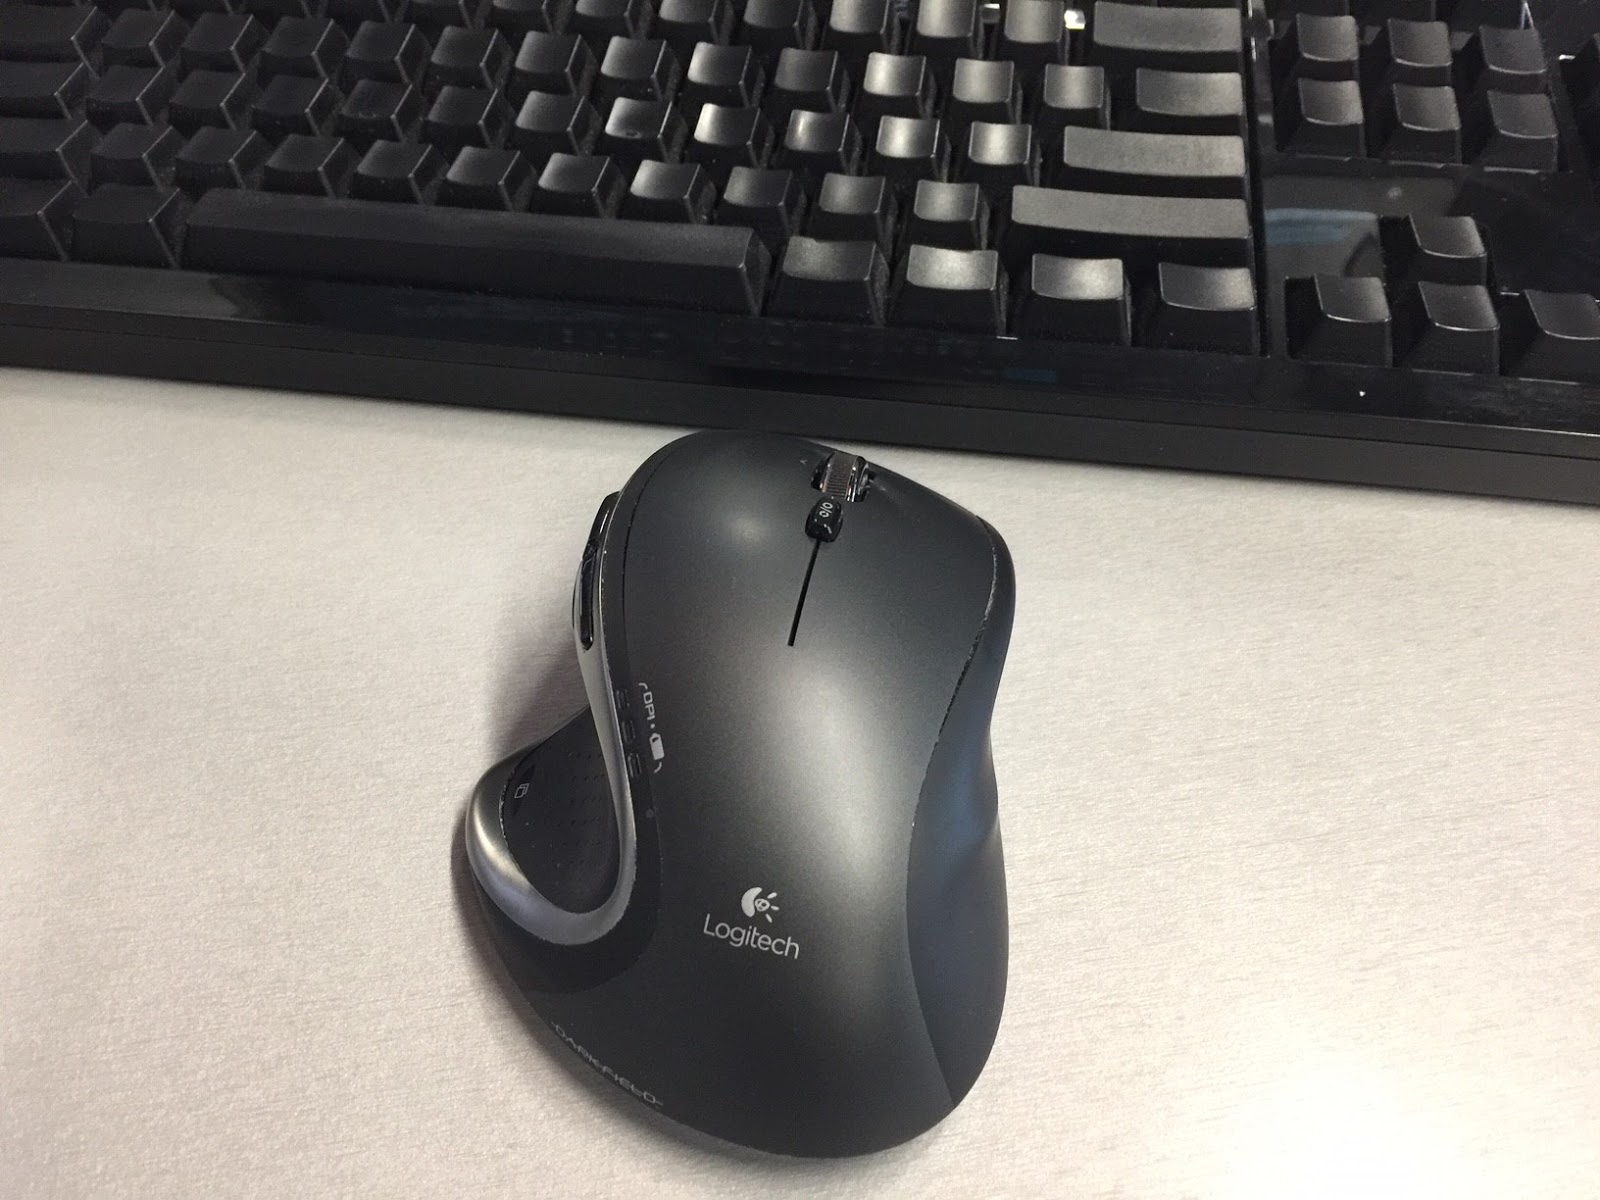 mouse right click stopped working windows 10